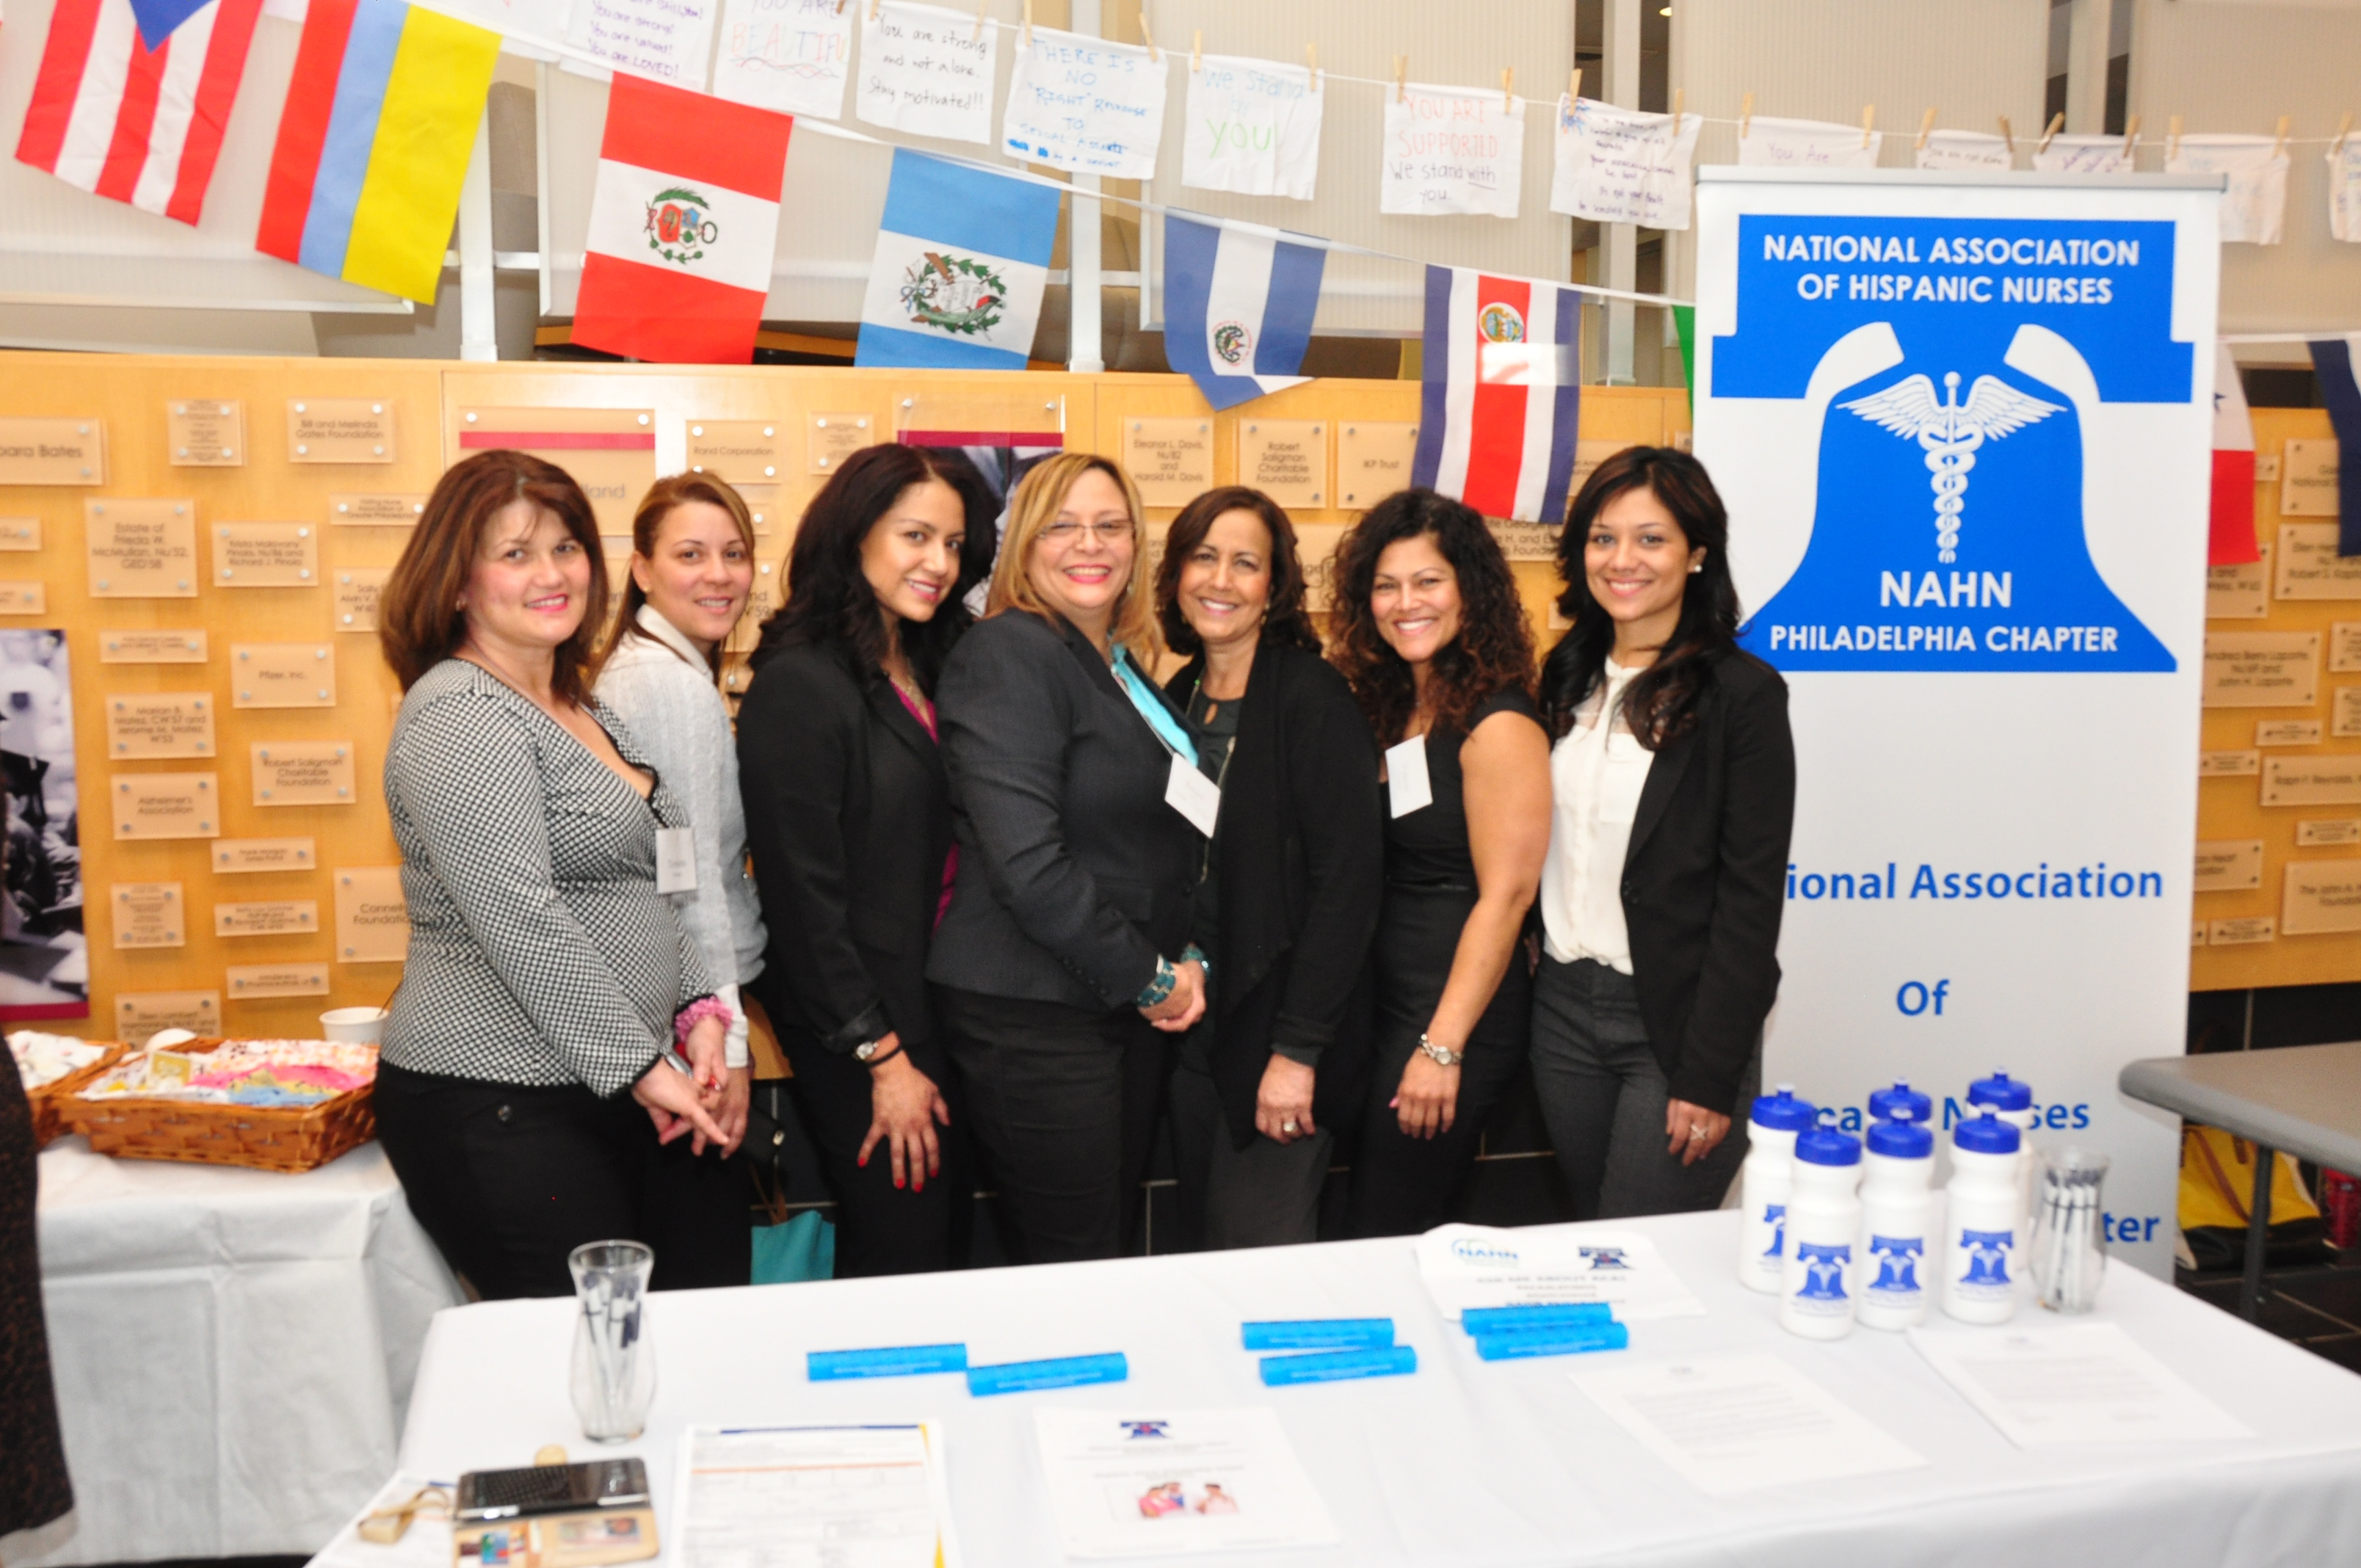 Photo of Latino Nurses Network Membe